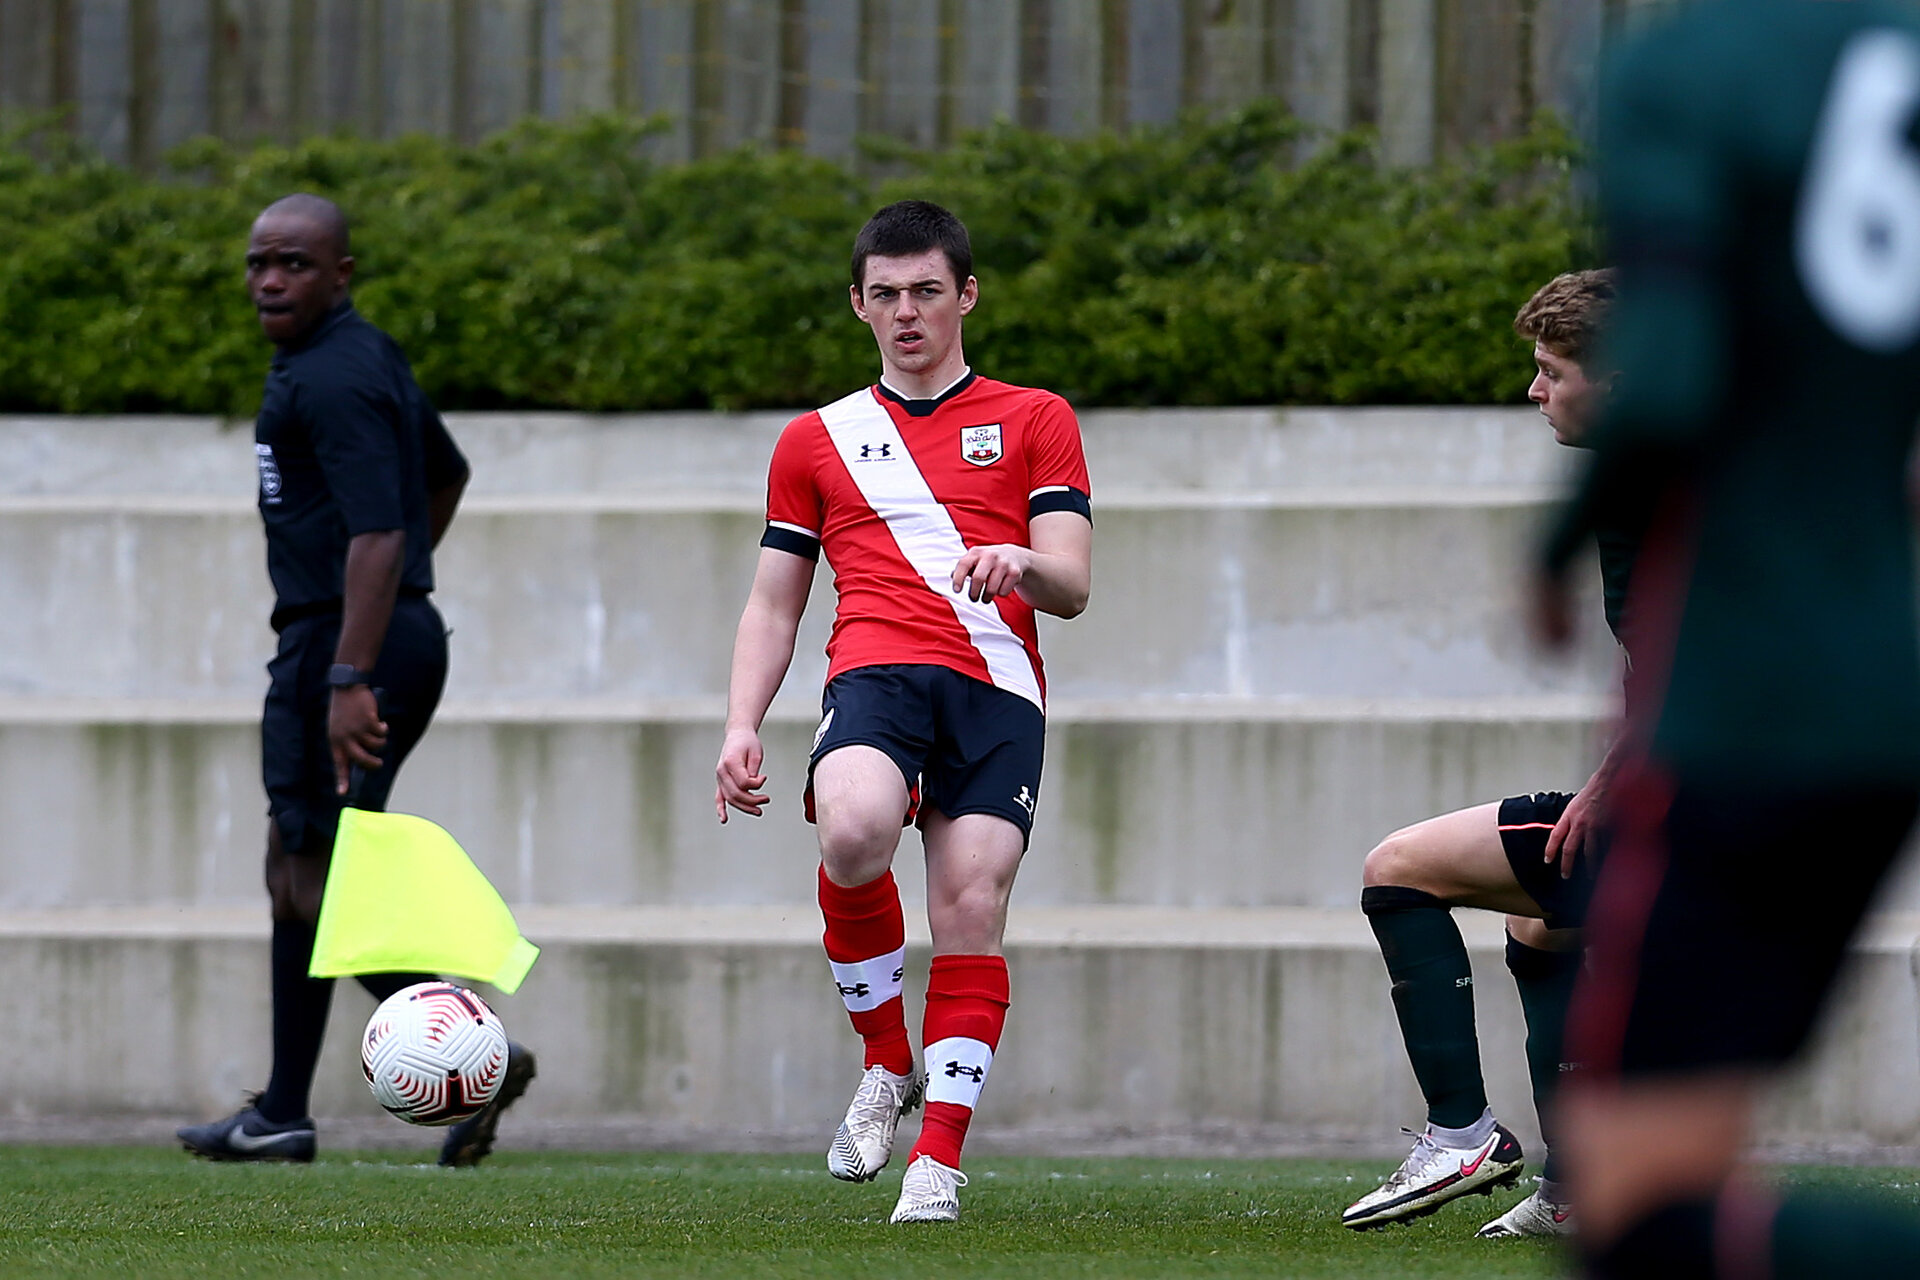 SOUTHAMPTON, ENGLAND - APRIL 10: Matt Carson of Southampton during the Premier League U18s match between Southampton U18 and Tottenham Hotspur at Staplewood Campus on April 10, 2021 in Southampton, England. (Photo by Isabelle Field/Southampton FC via Getty Images)